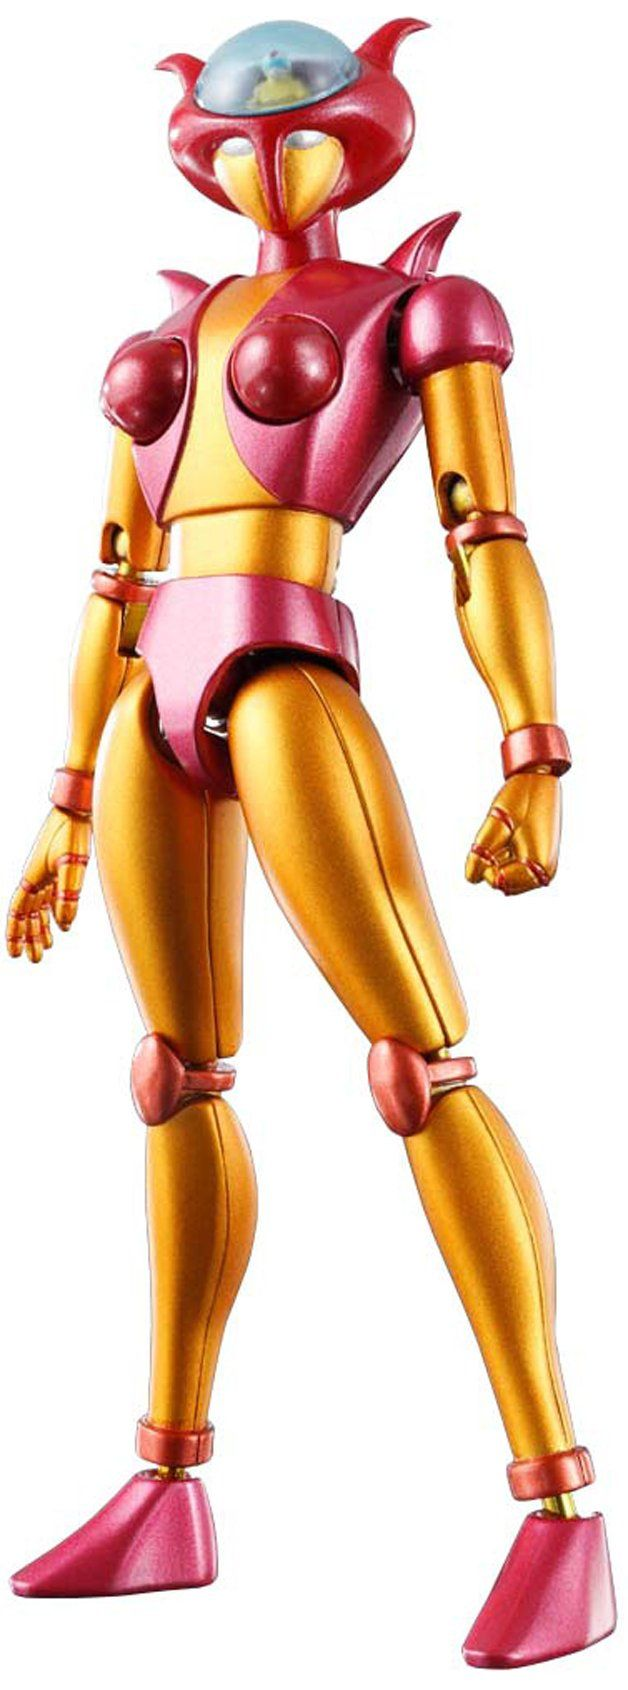 "Amazon.com: Bandai Tamashii Nations Soul of Chogokin Aphrodite A ""Mazinger Z"" Action Figure: Toys & Games"